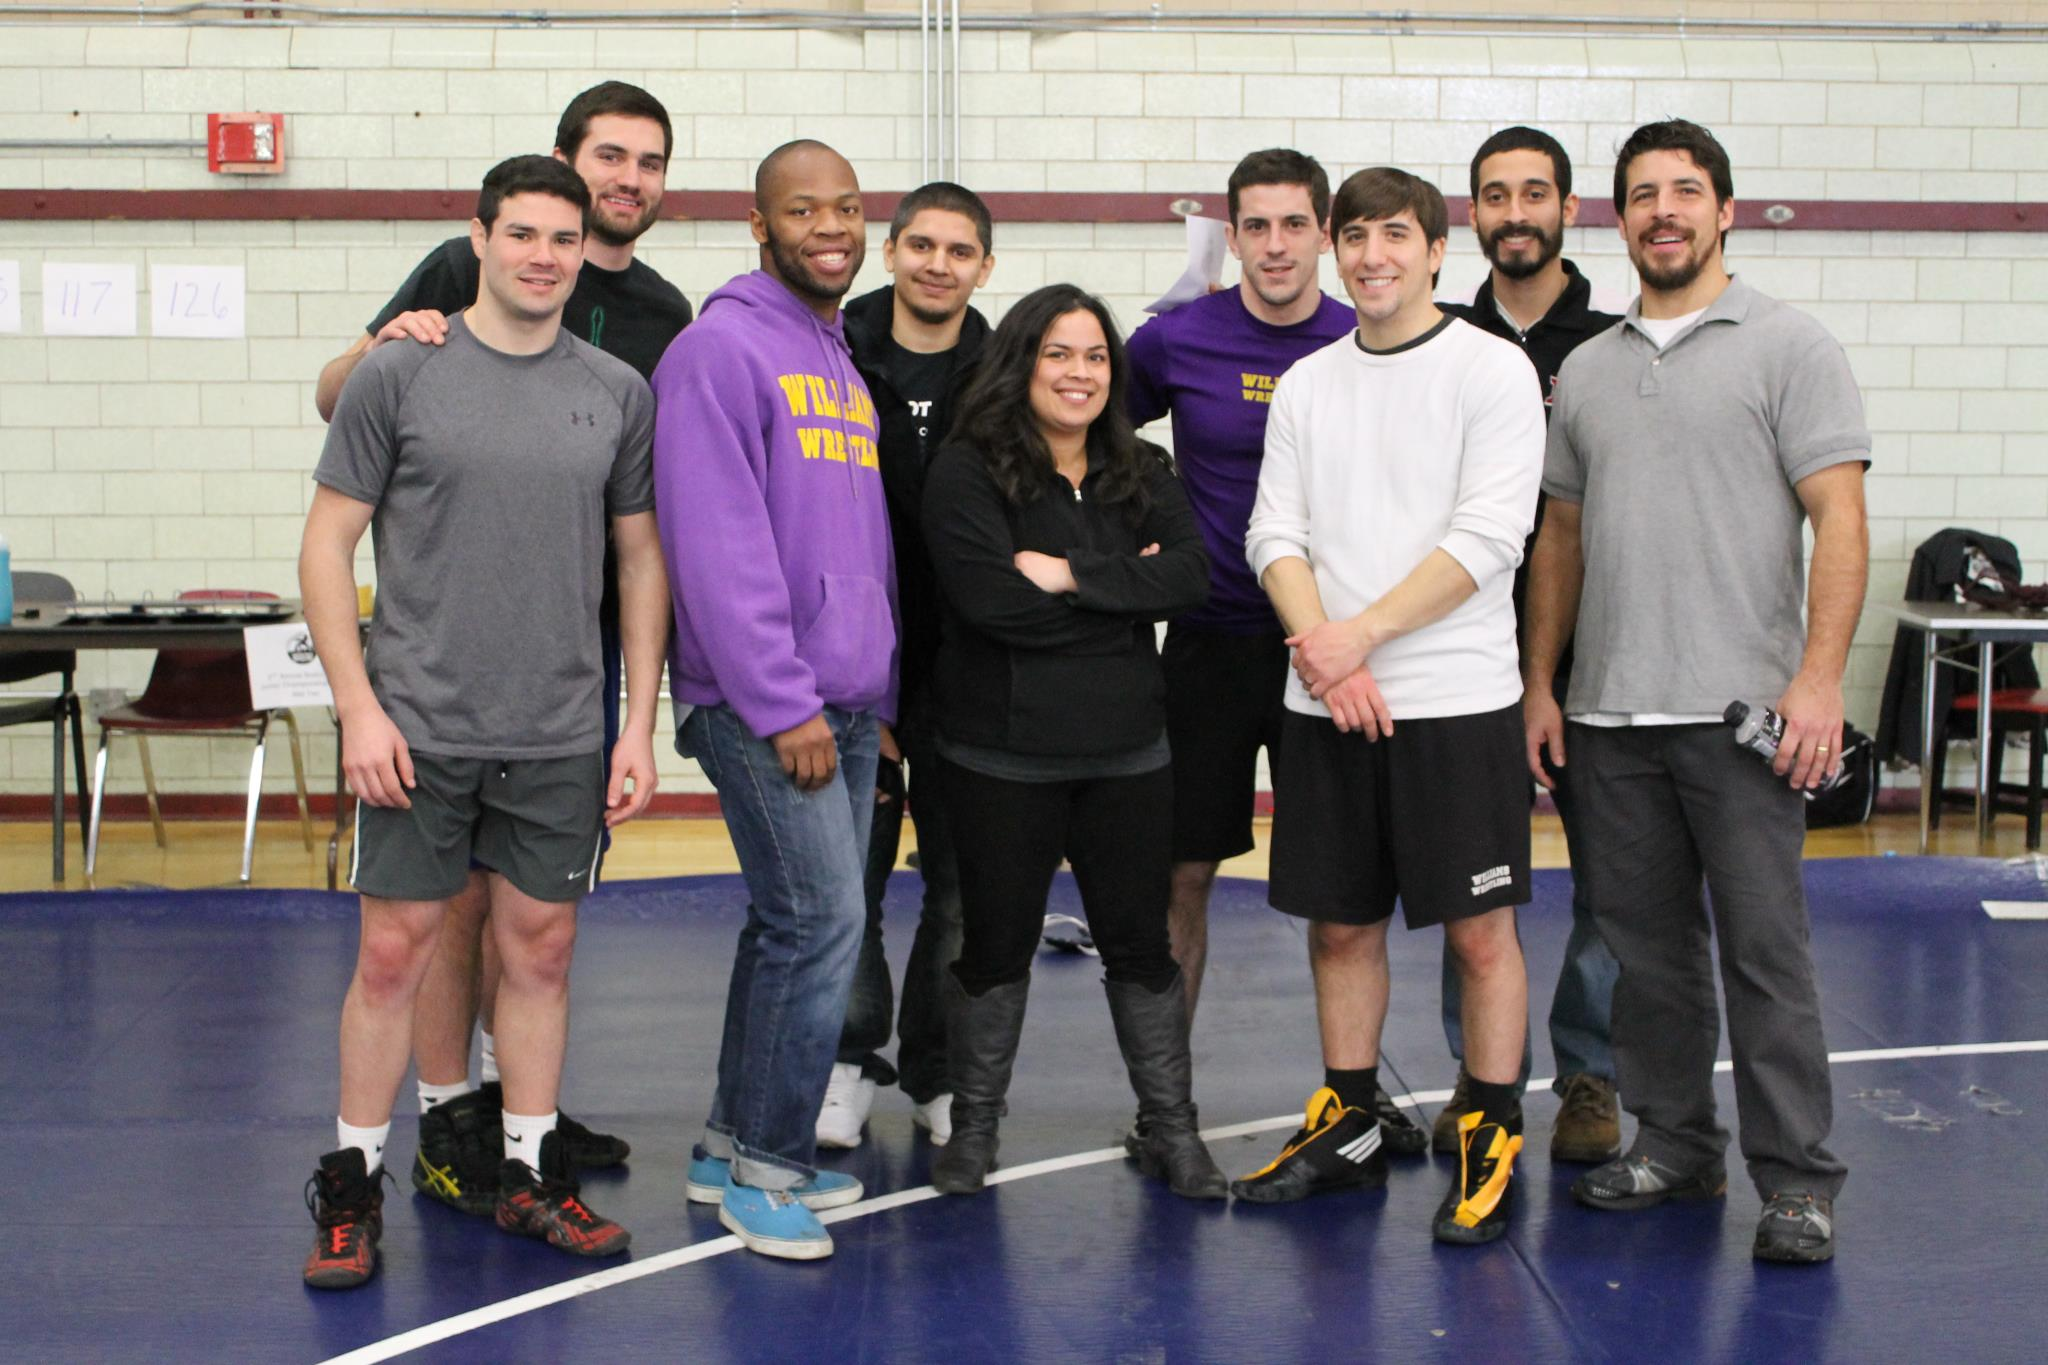 Bior (pictured here in middle) with volunteers, board members, and coaches at the conclusion of the Boston City Championships on January 20, 2013 at TechBoston Academy (Dorchester).